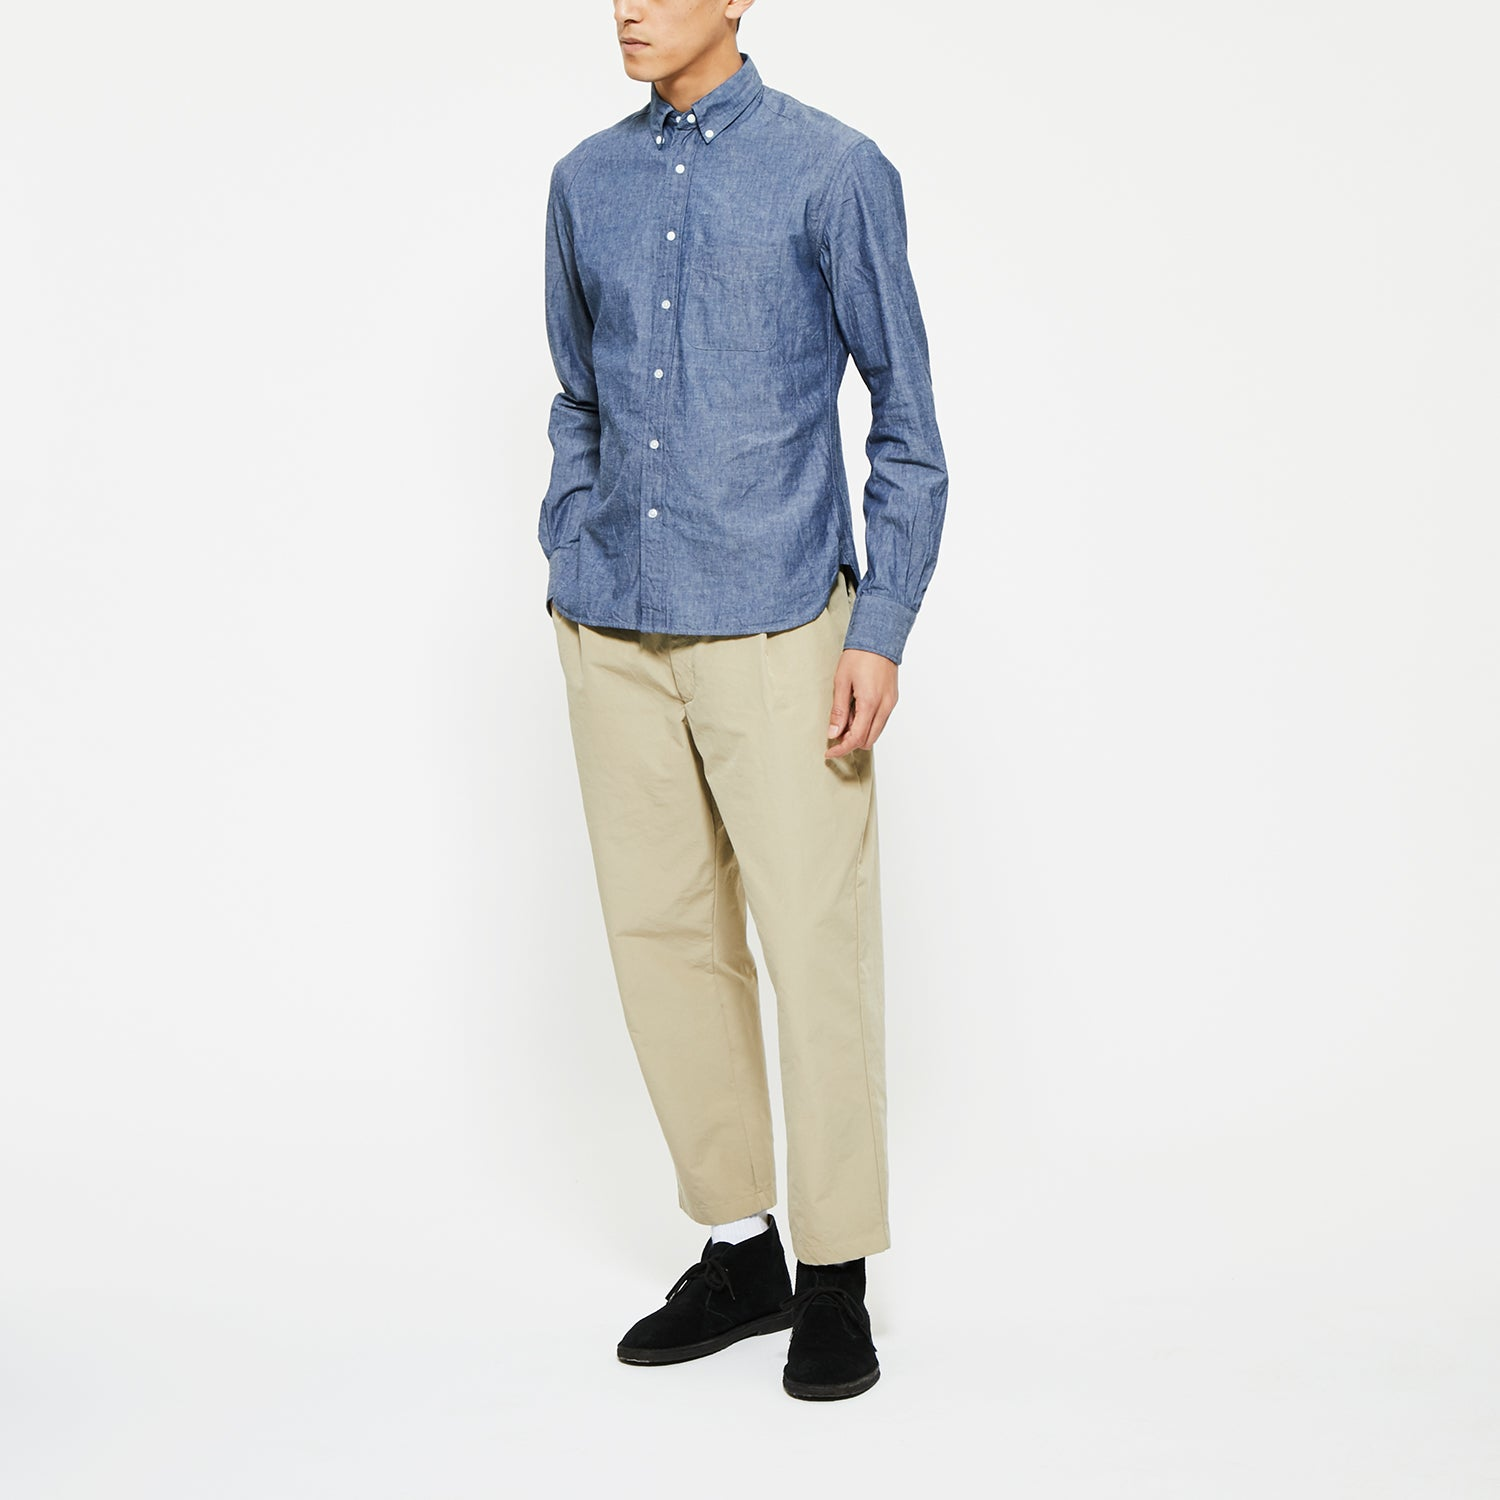 B.D. COLLAR INDIGO SHIRT